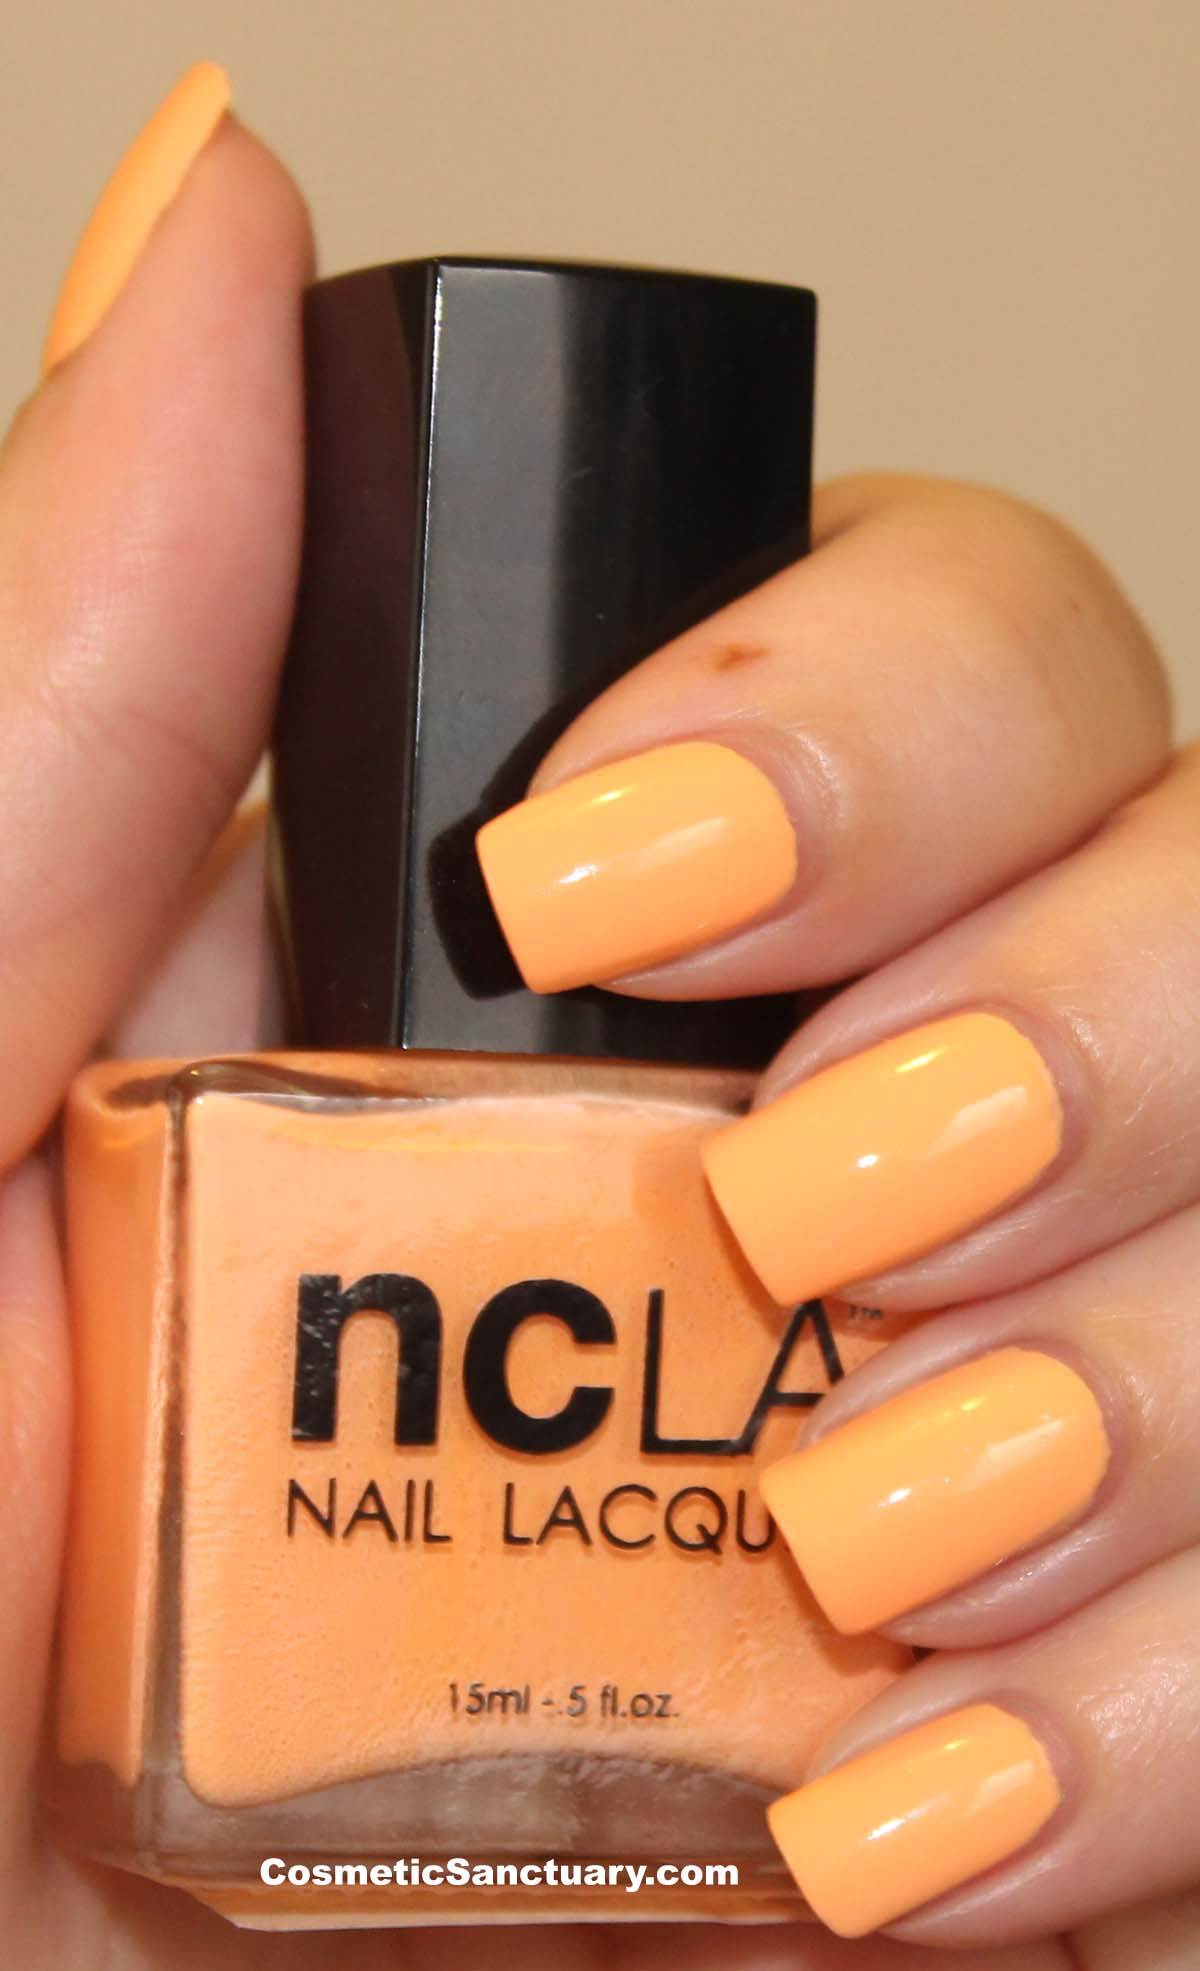 NCLA Nail Lacquer Swatches and Review